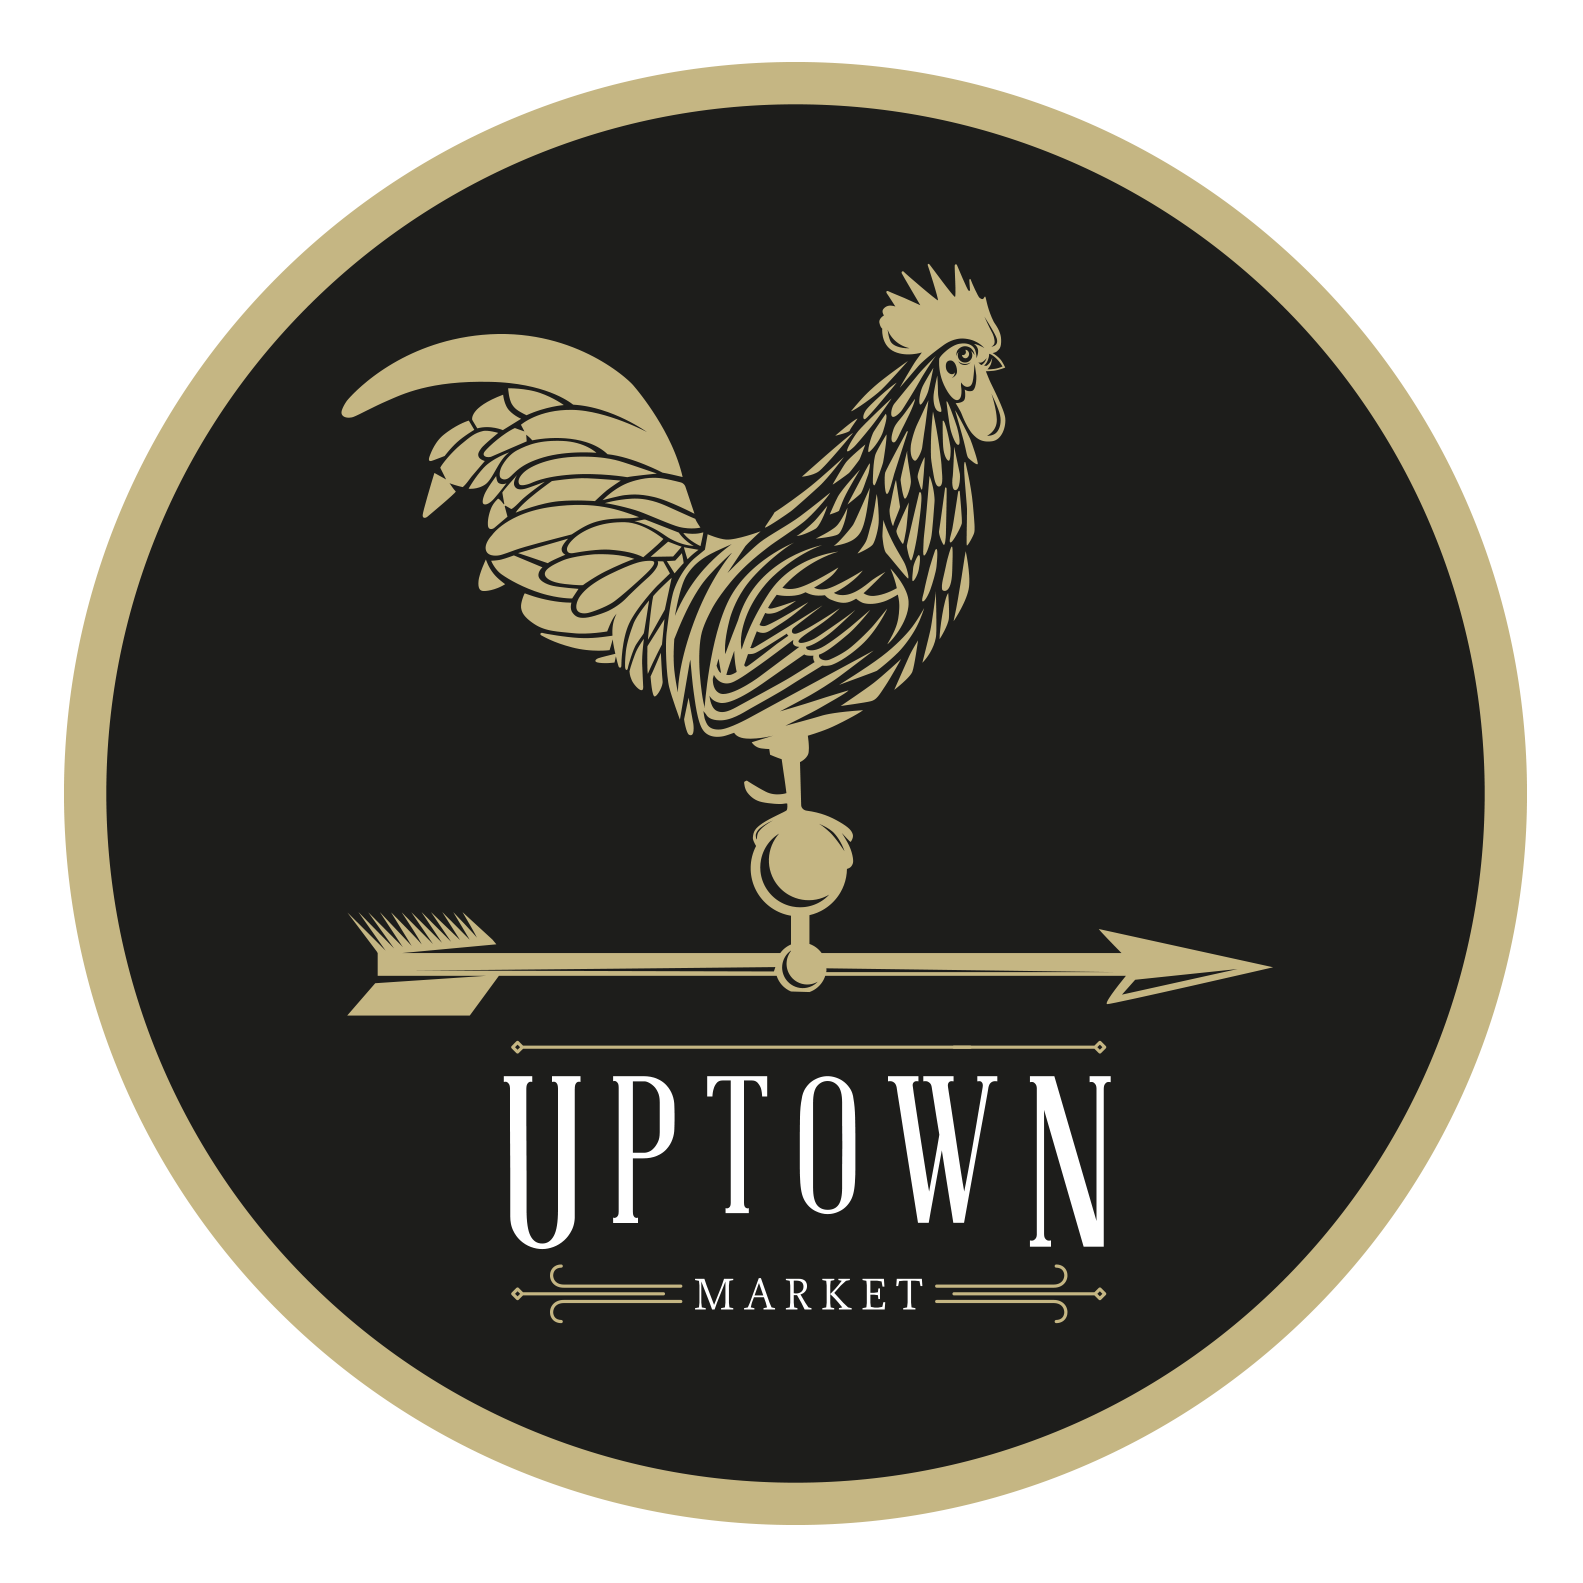 UpTown_WindVaneIcon_Circular (1).png